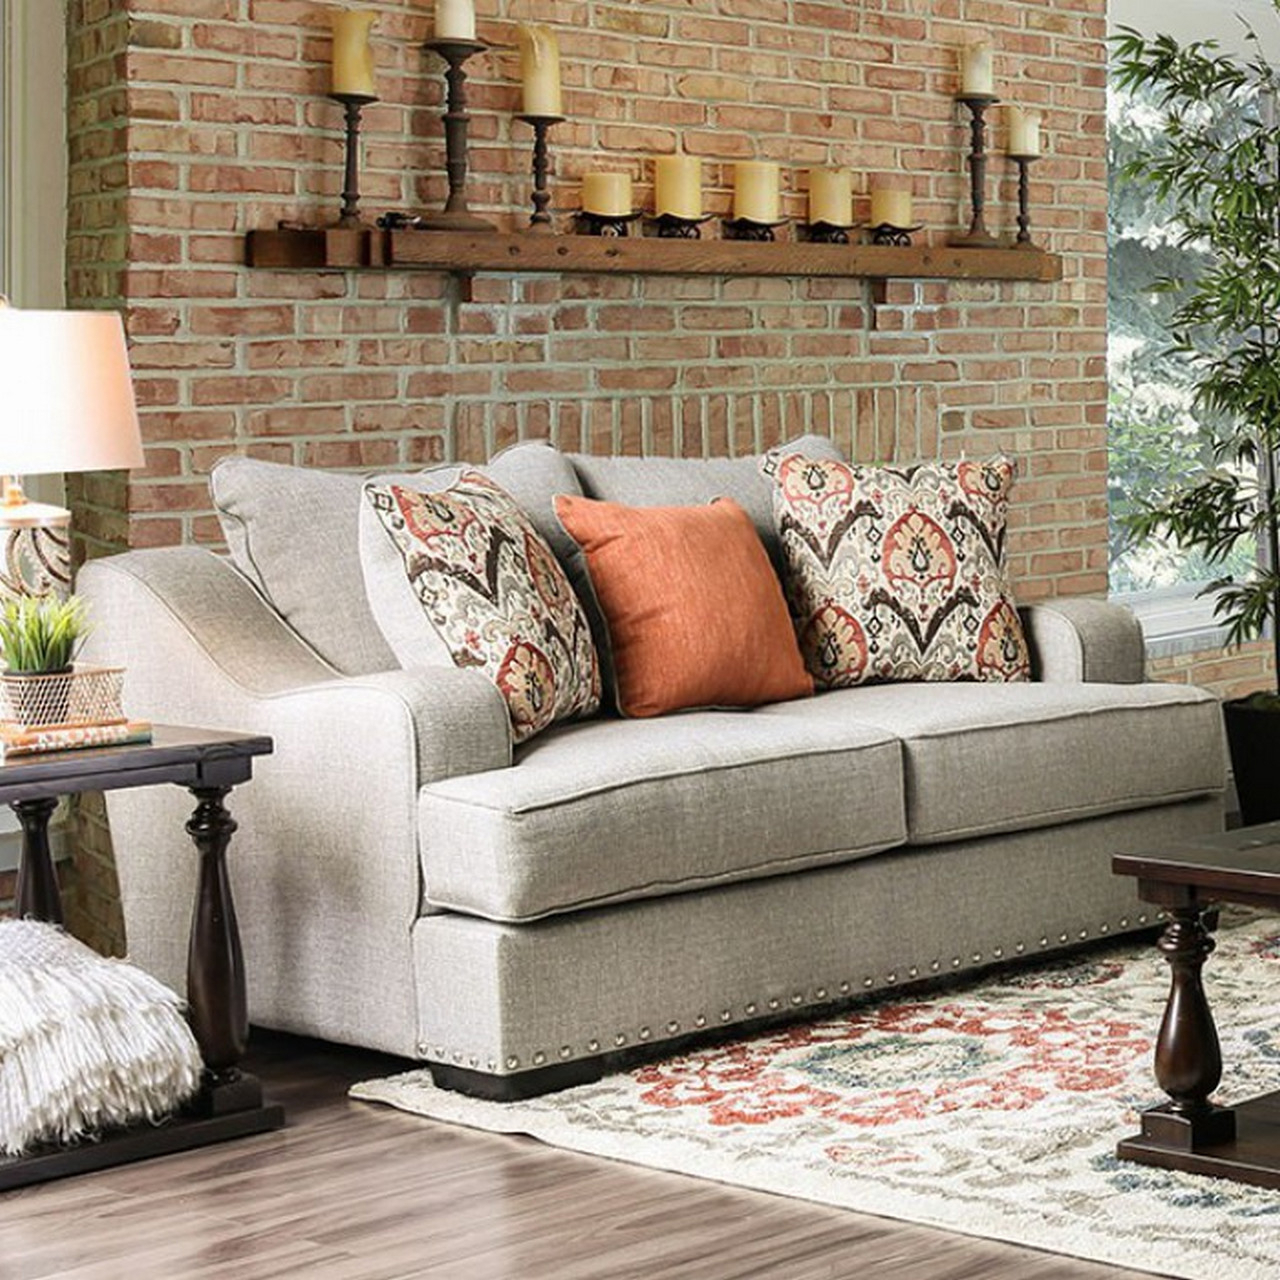 2Pc Polyfiber Sectional Sofas With Nailhead Trims Gray With Regard To Trendy Savannah Transitional Sloped Arms Light Grey Sofa Set With (View 12 of 25)